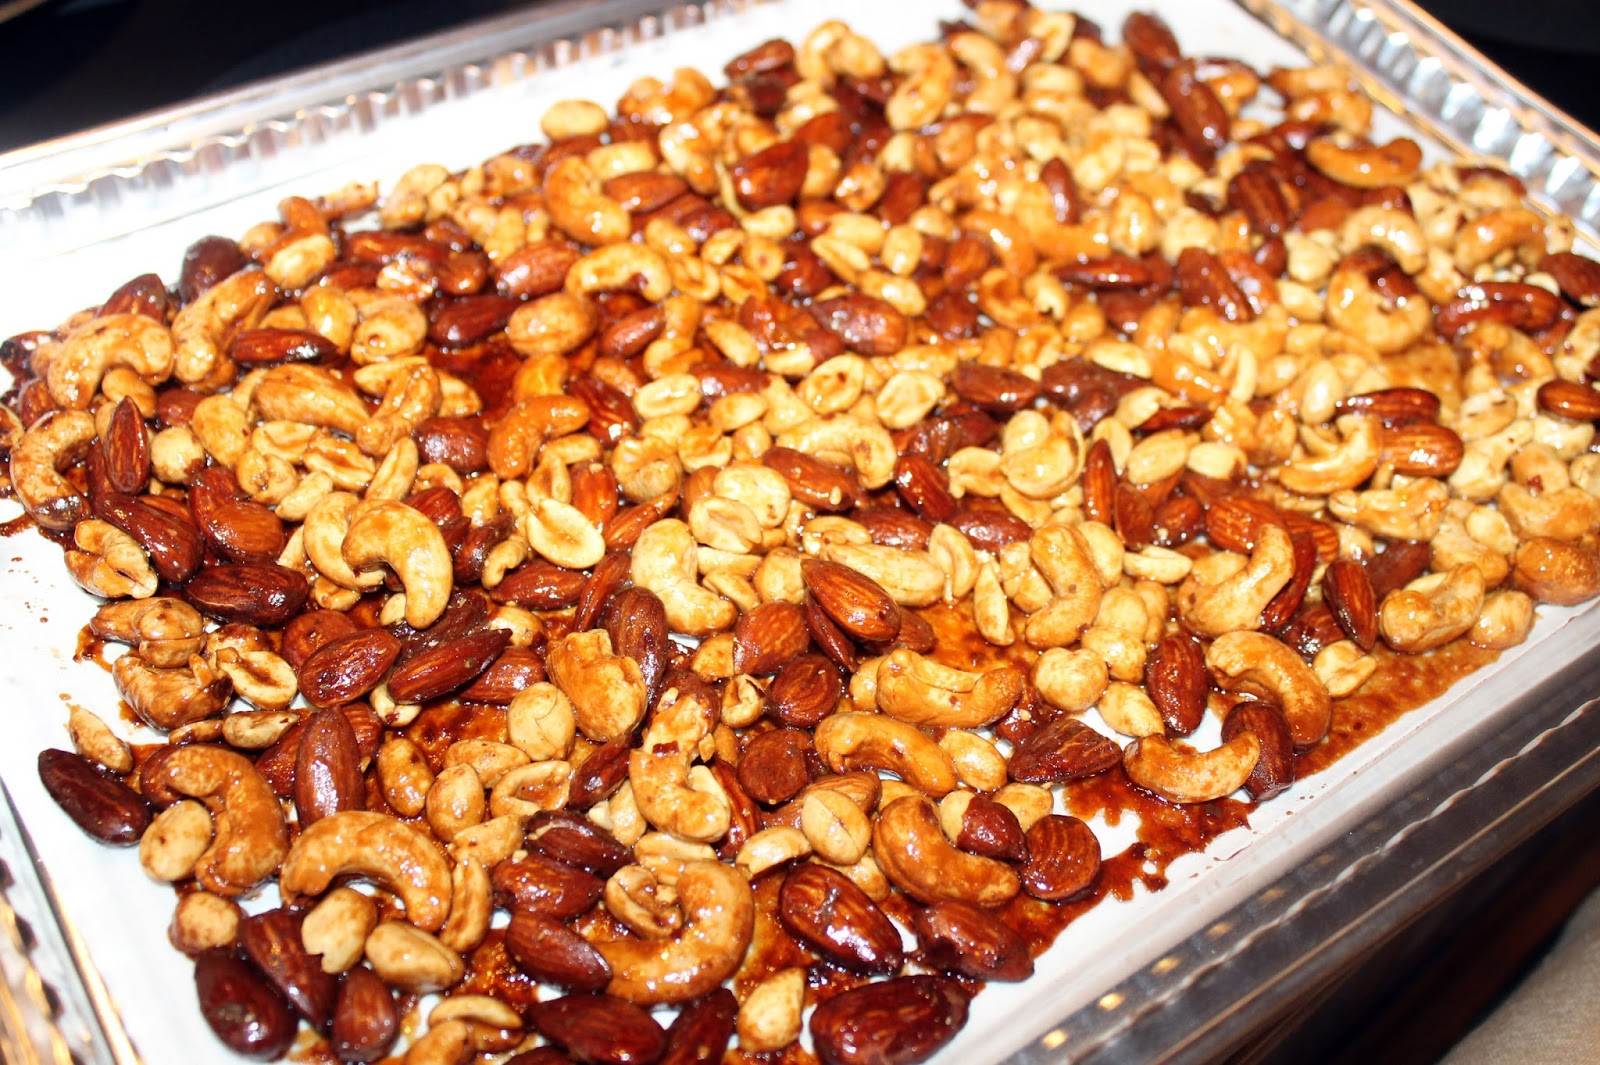 Cooking With Mary and Friends: Honey Roasted Mixed Nuts